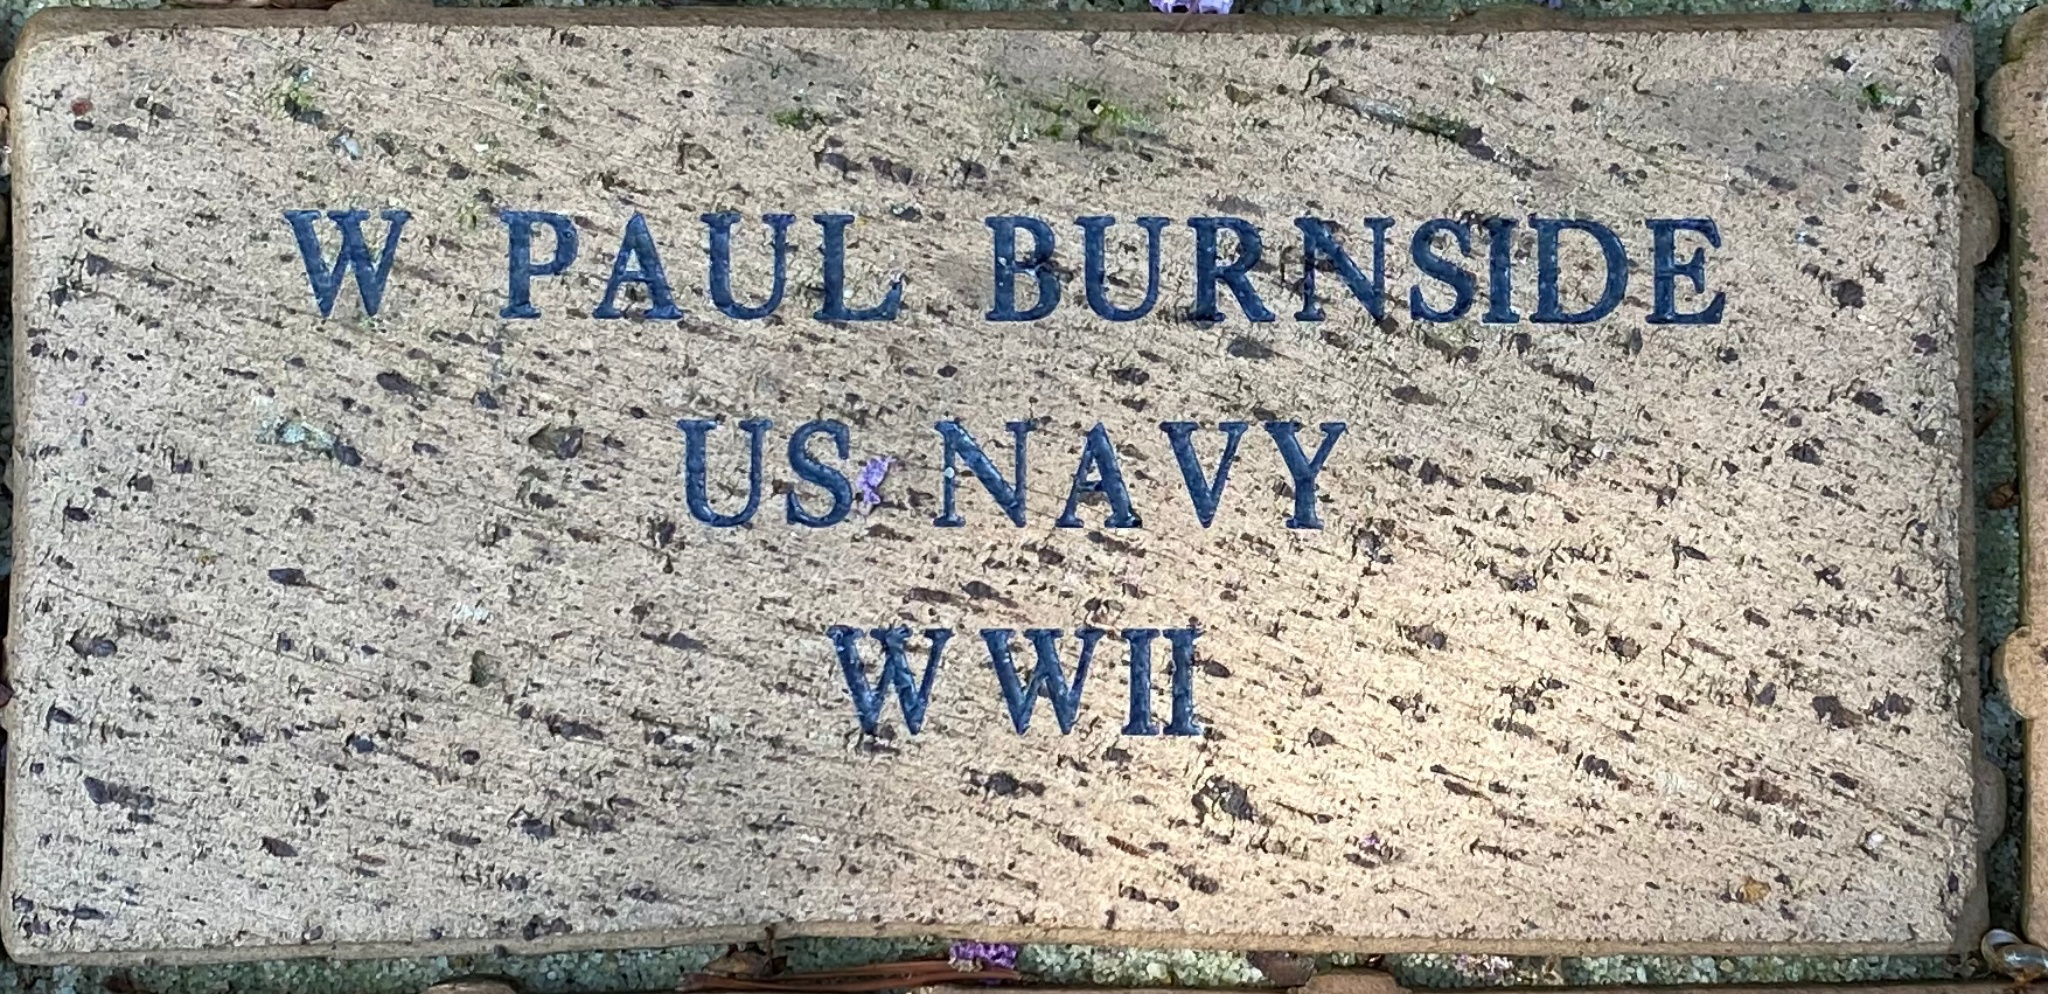 W PAUL BURNSIDE US NAVY WW II